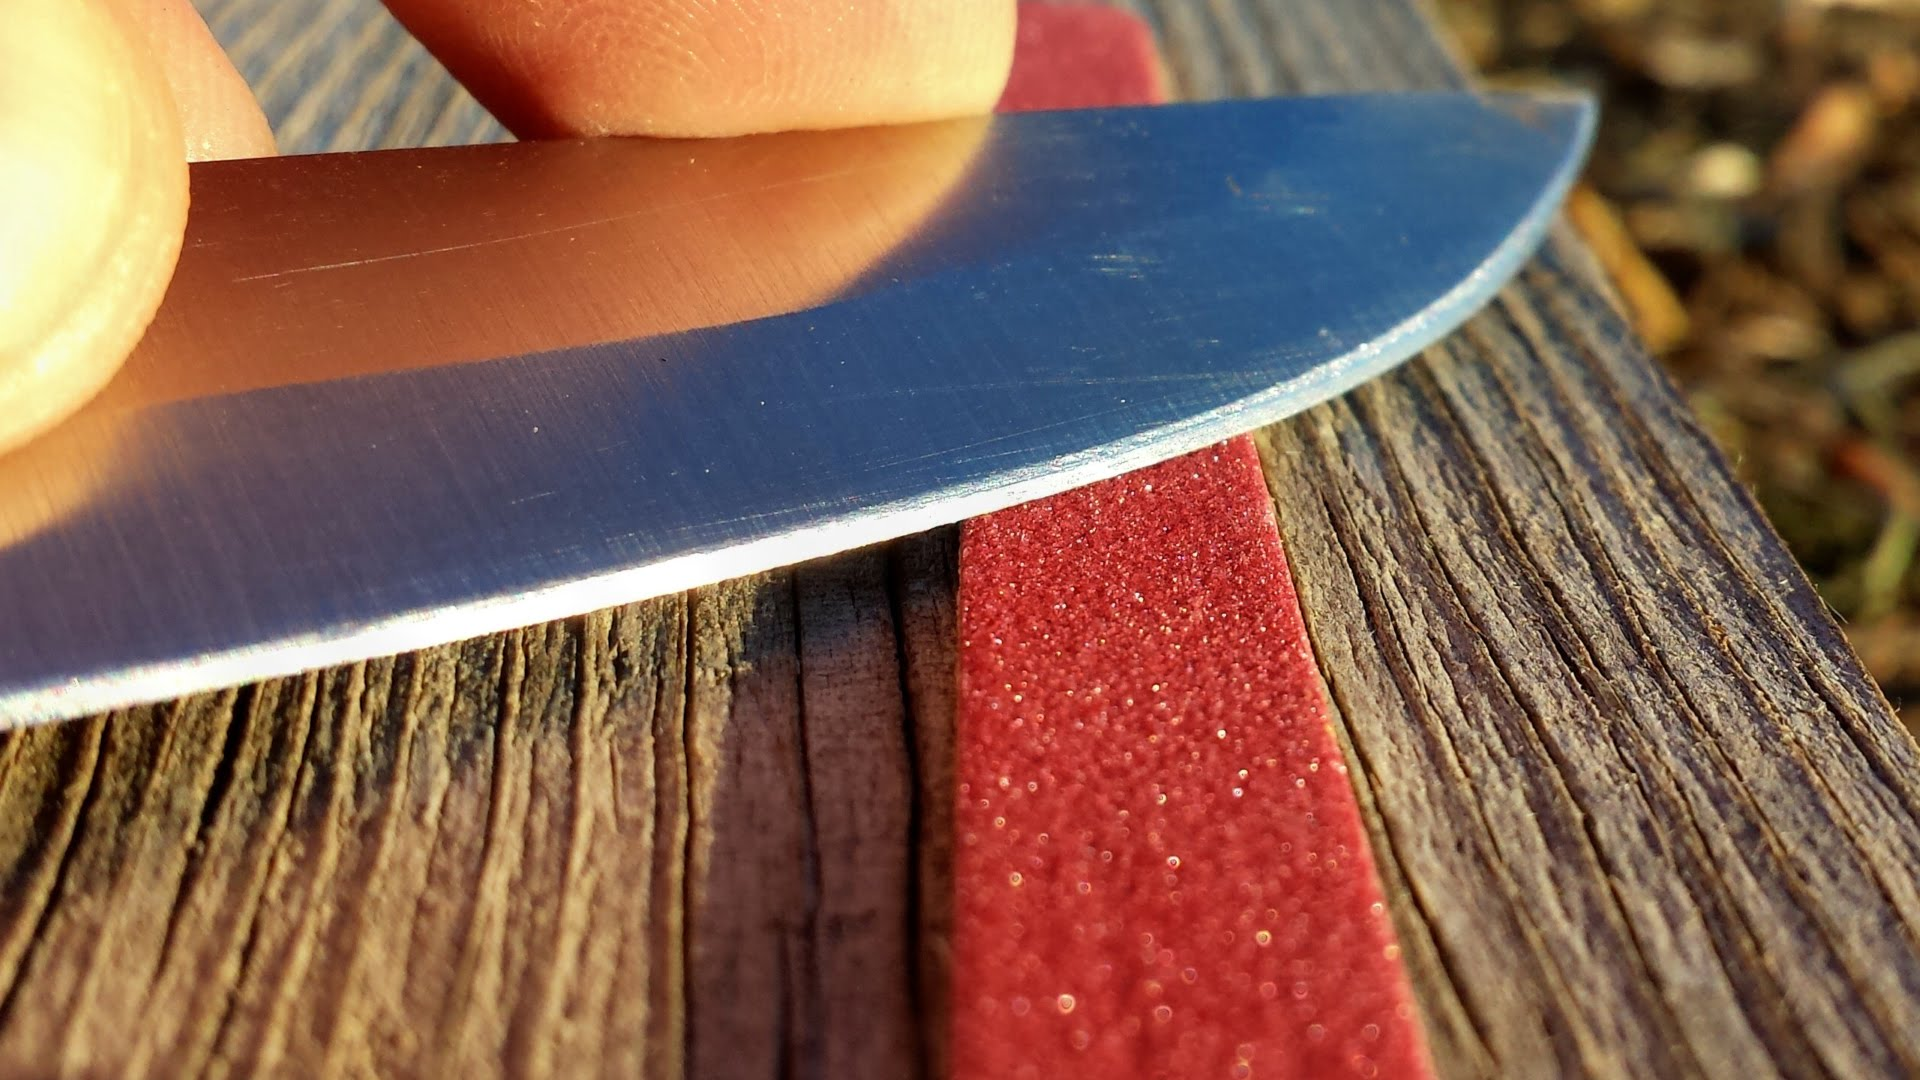 5 Ways To Sharpen A Knife Without A Sharpener